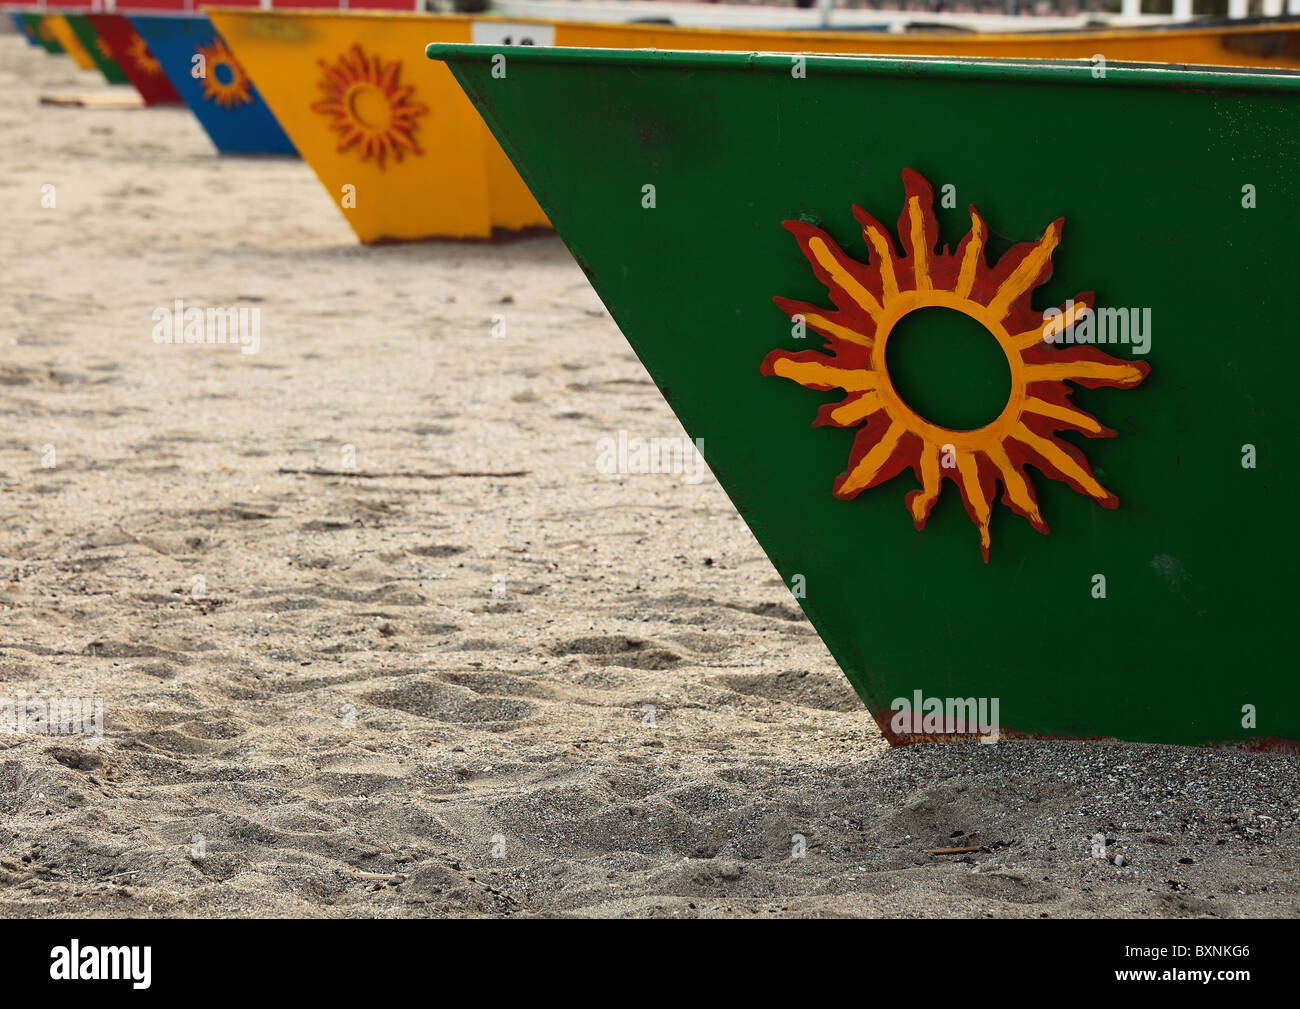 A row of boat shaped barbecues on Fuengirola beach - Stock Image